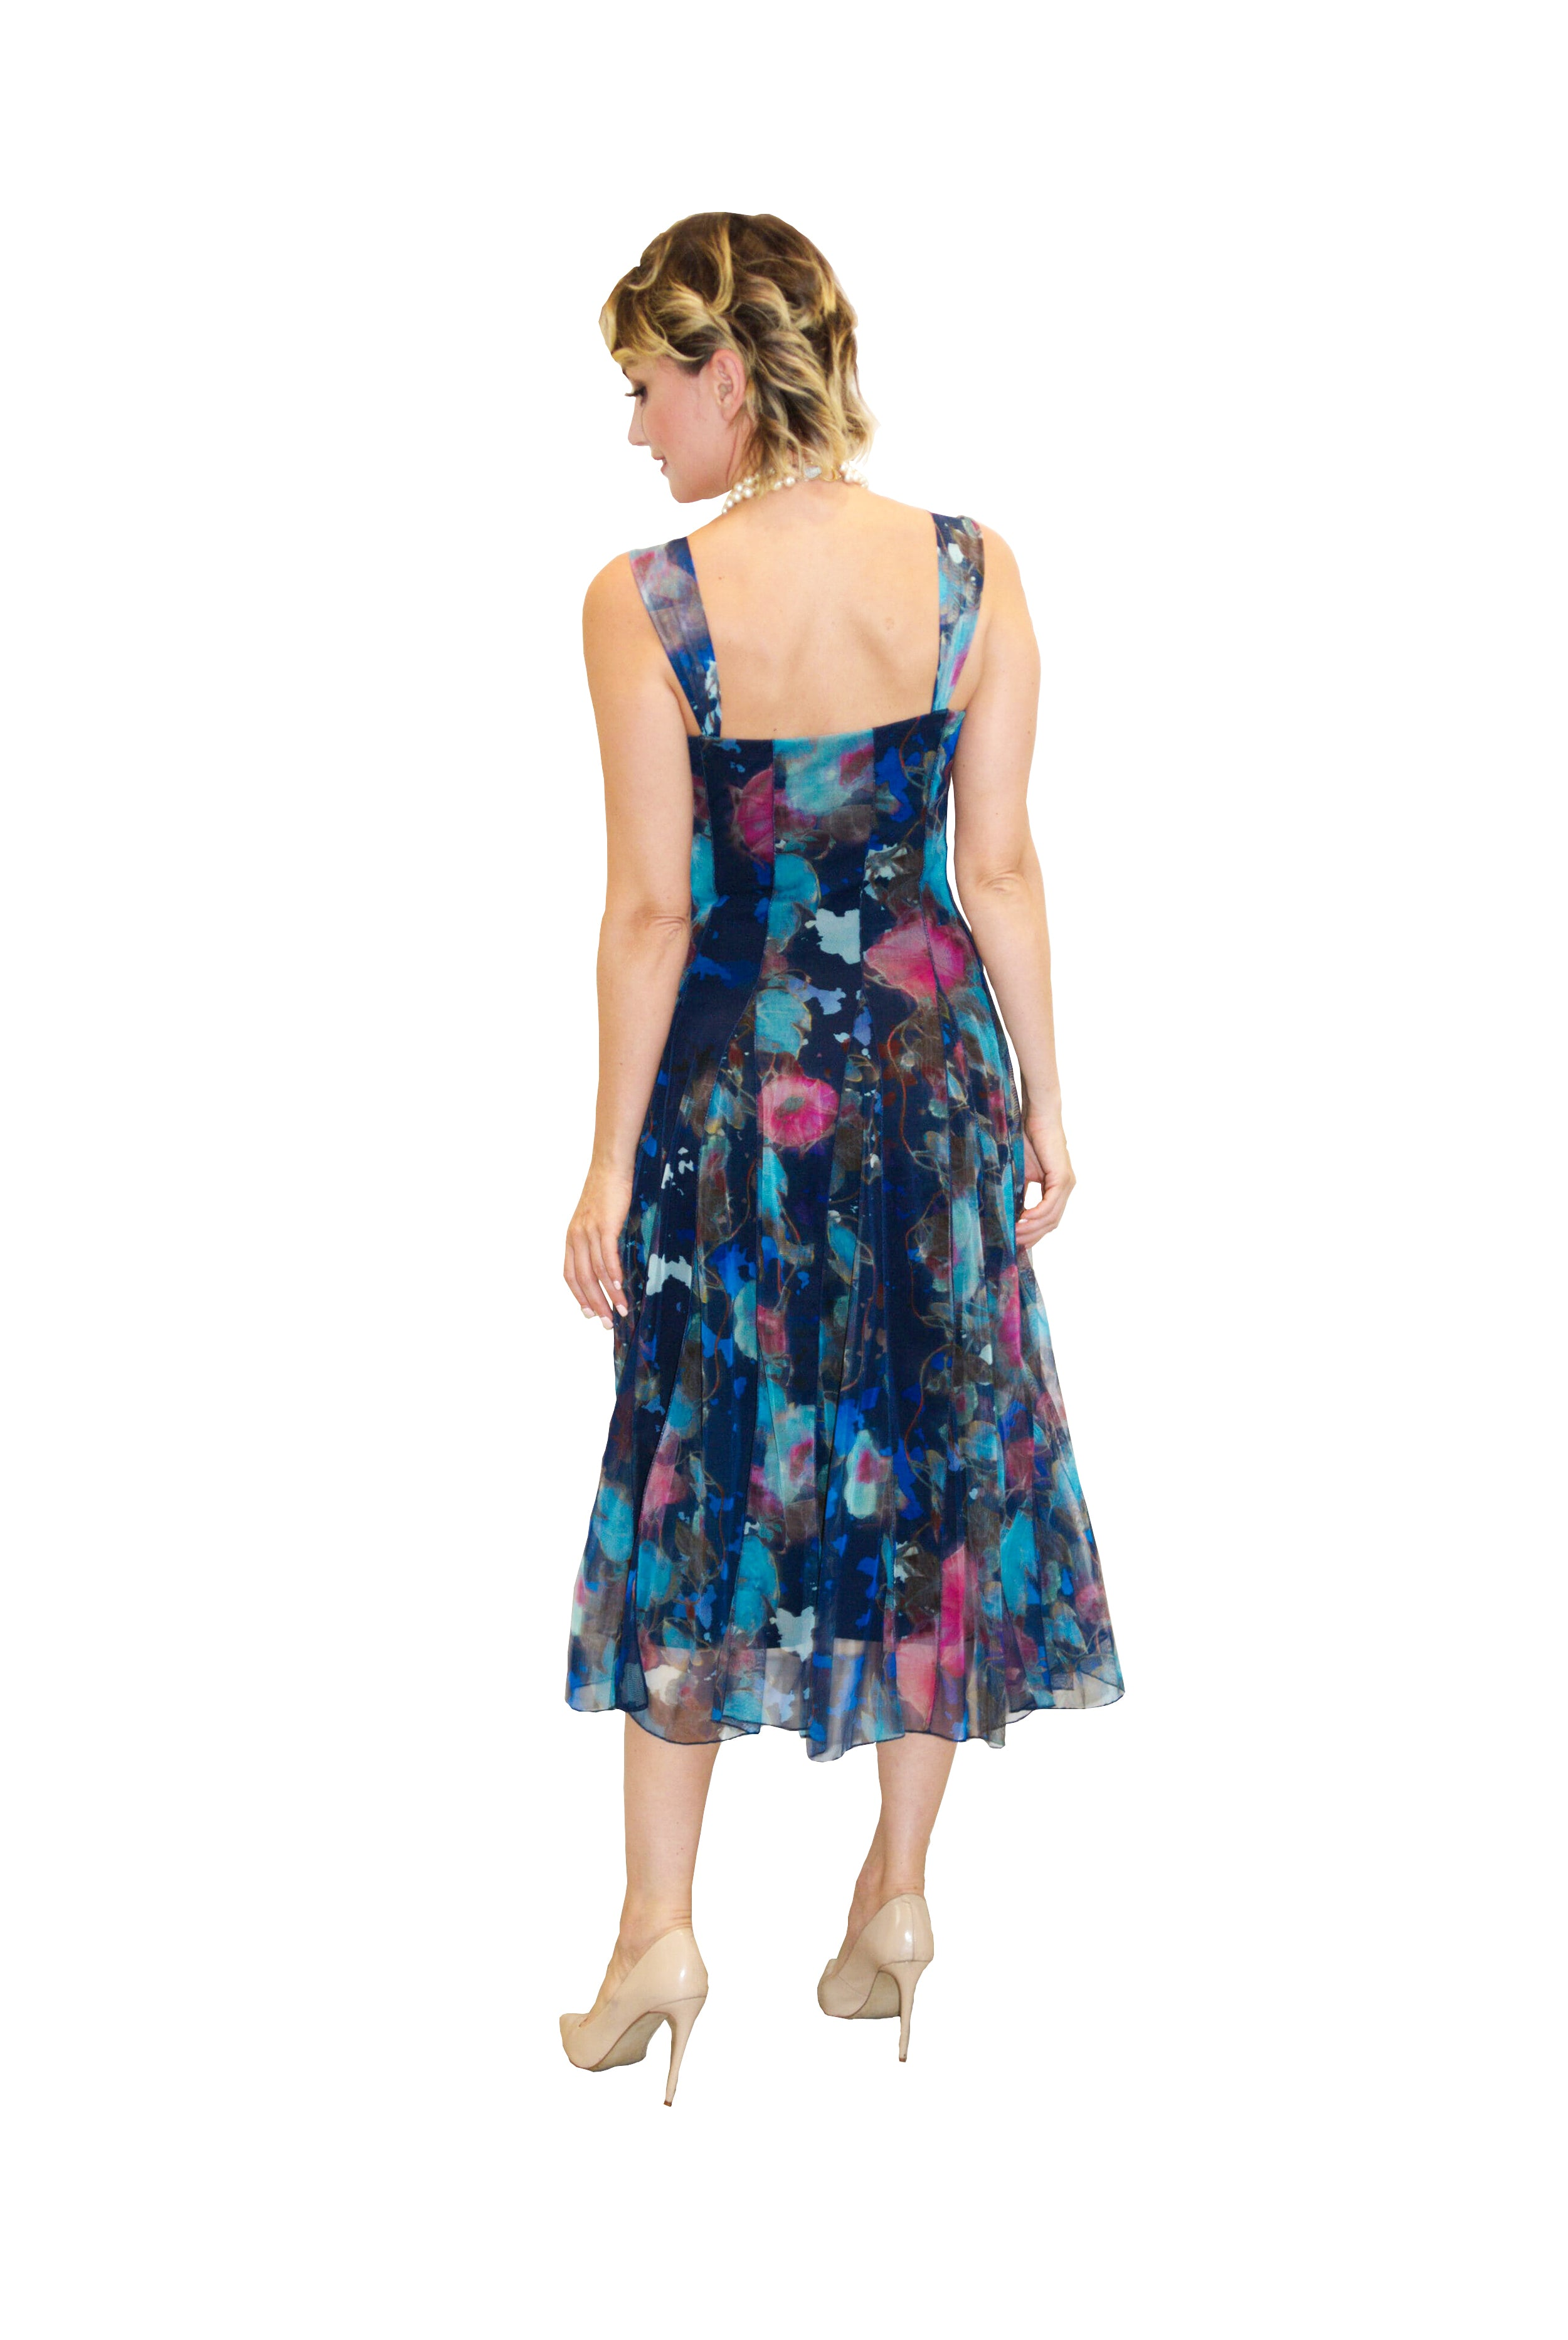 Mesh Floral Blue Print Designer Dress